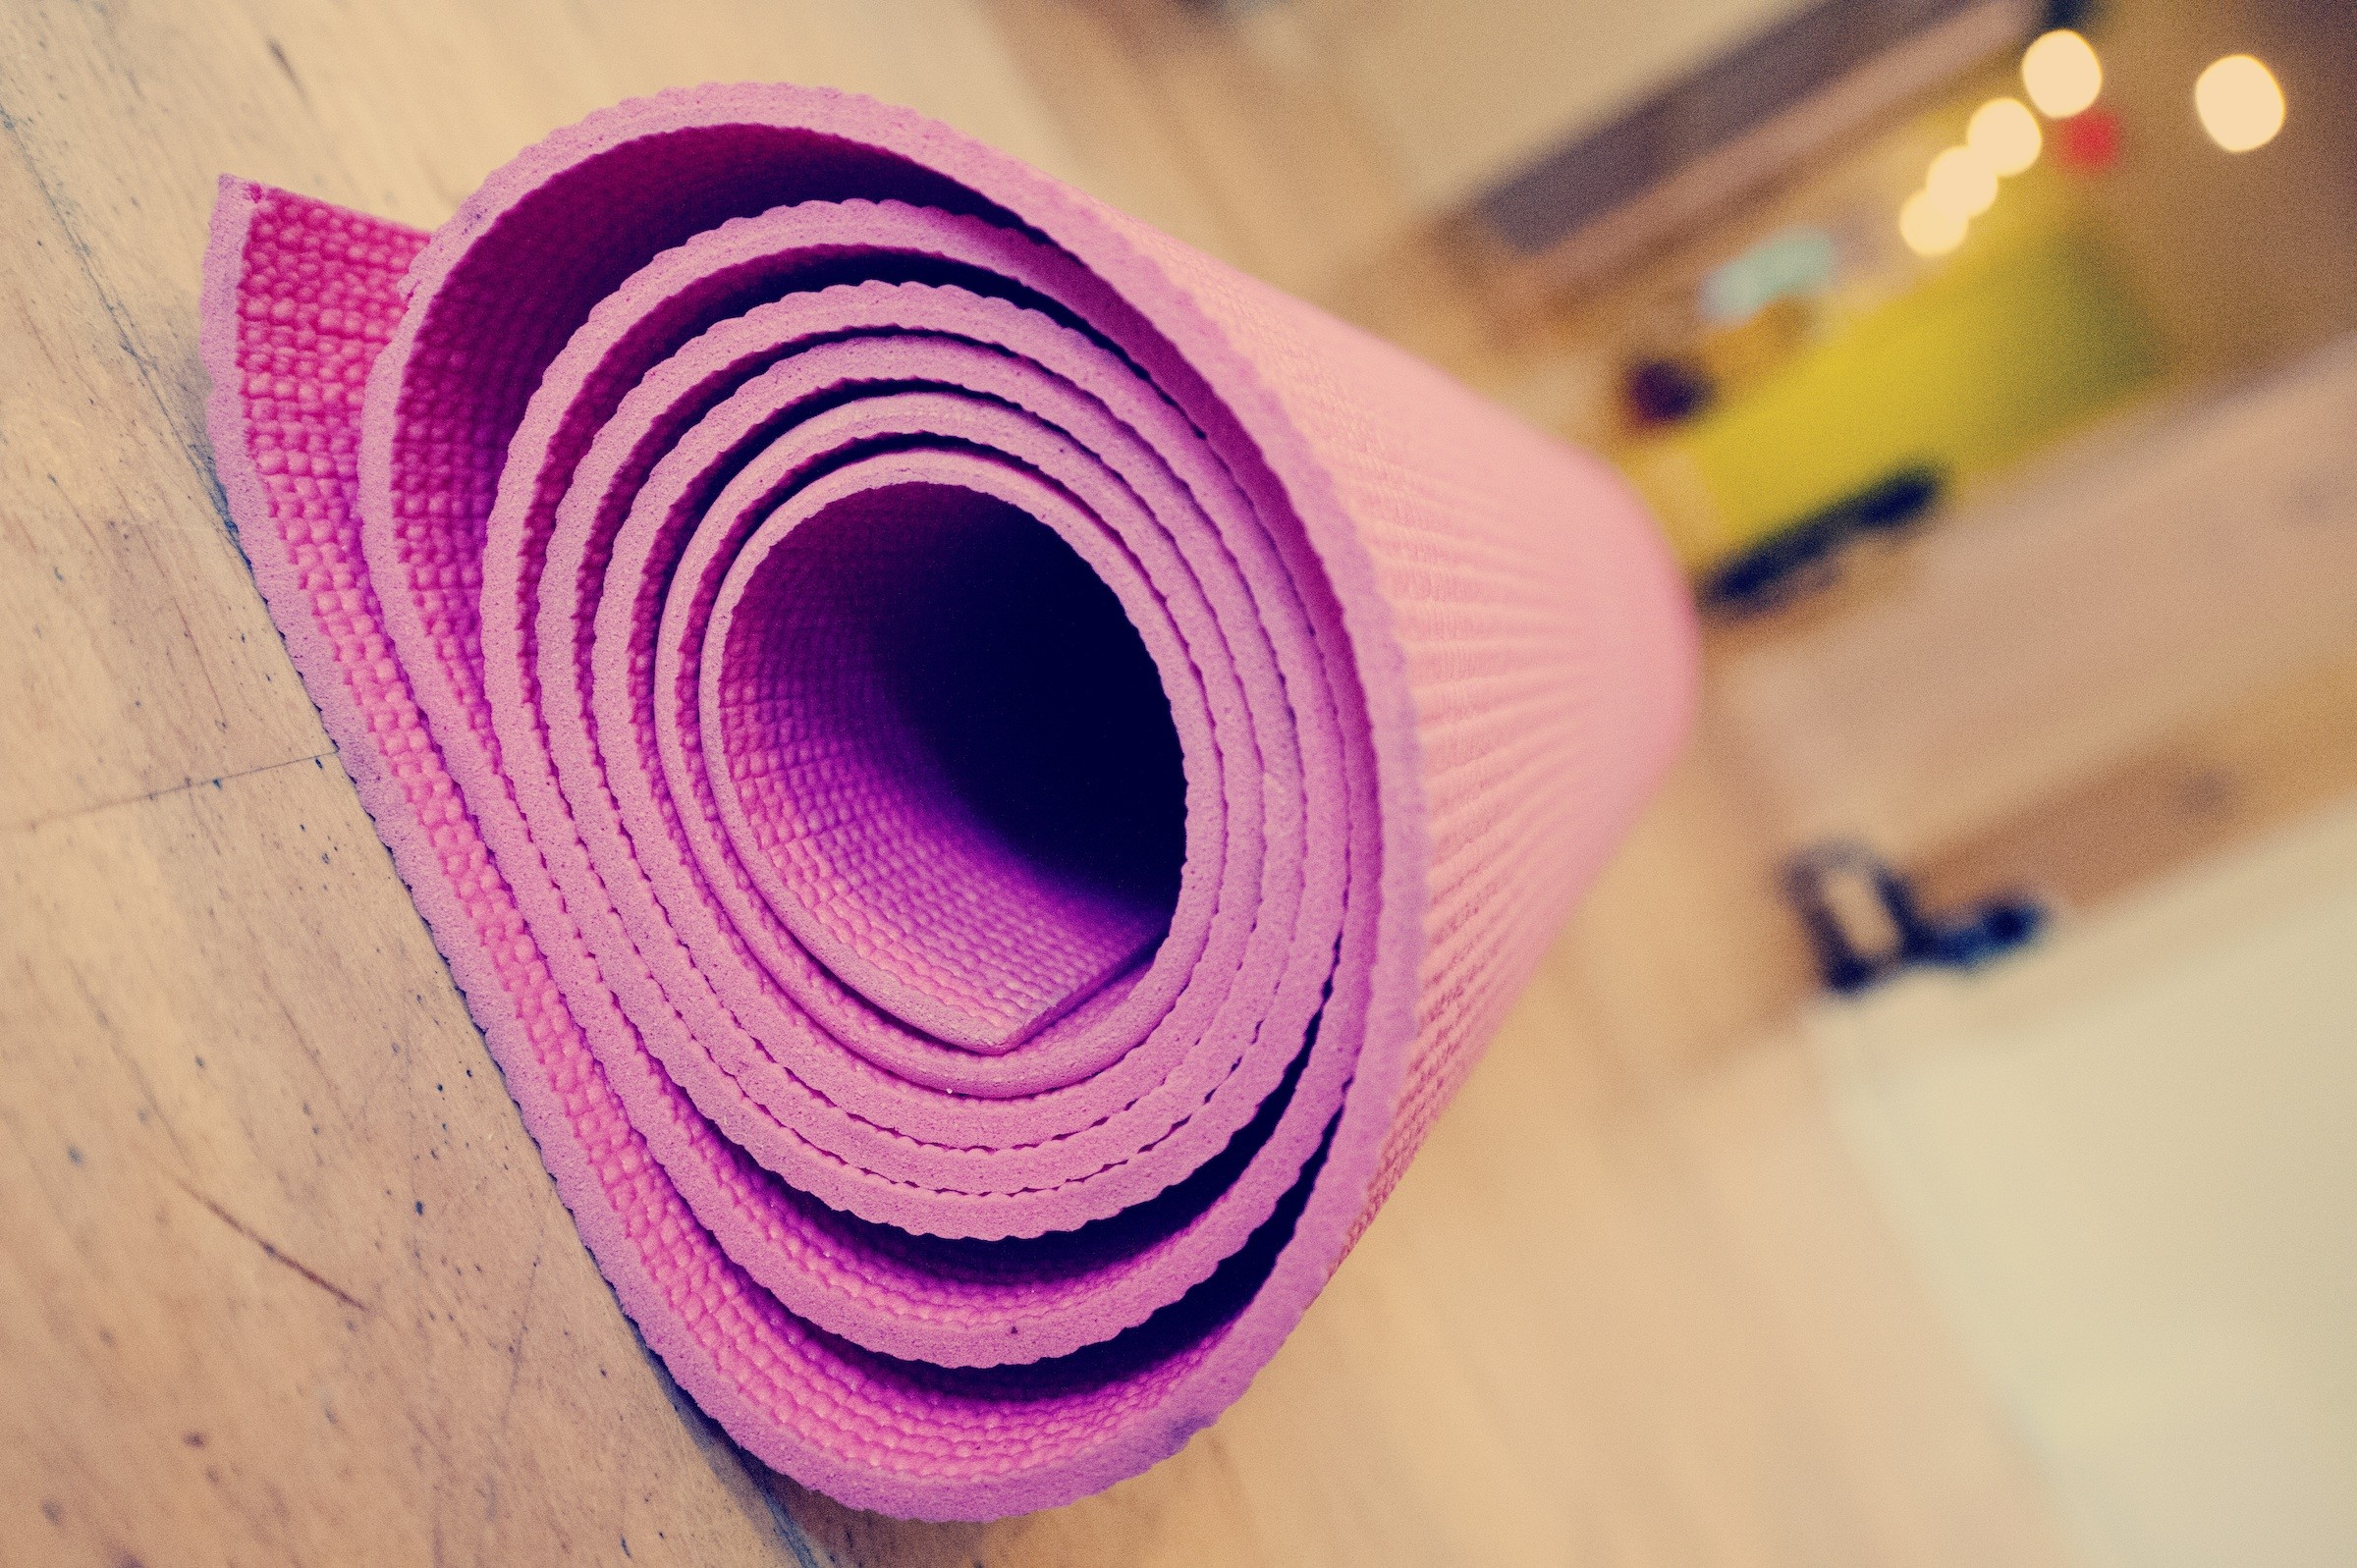 Attention yogis, it's time to roll out